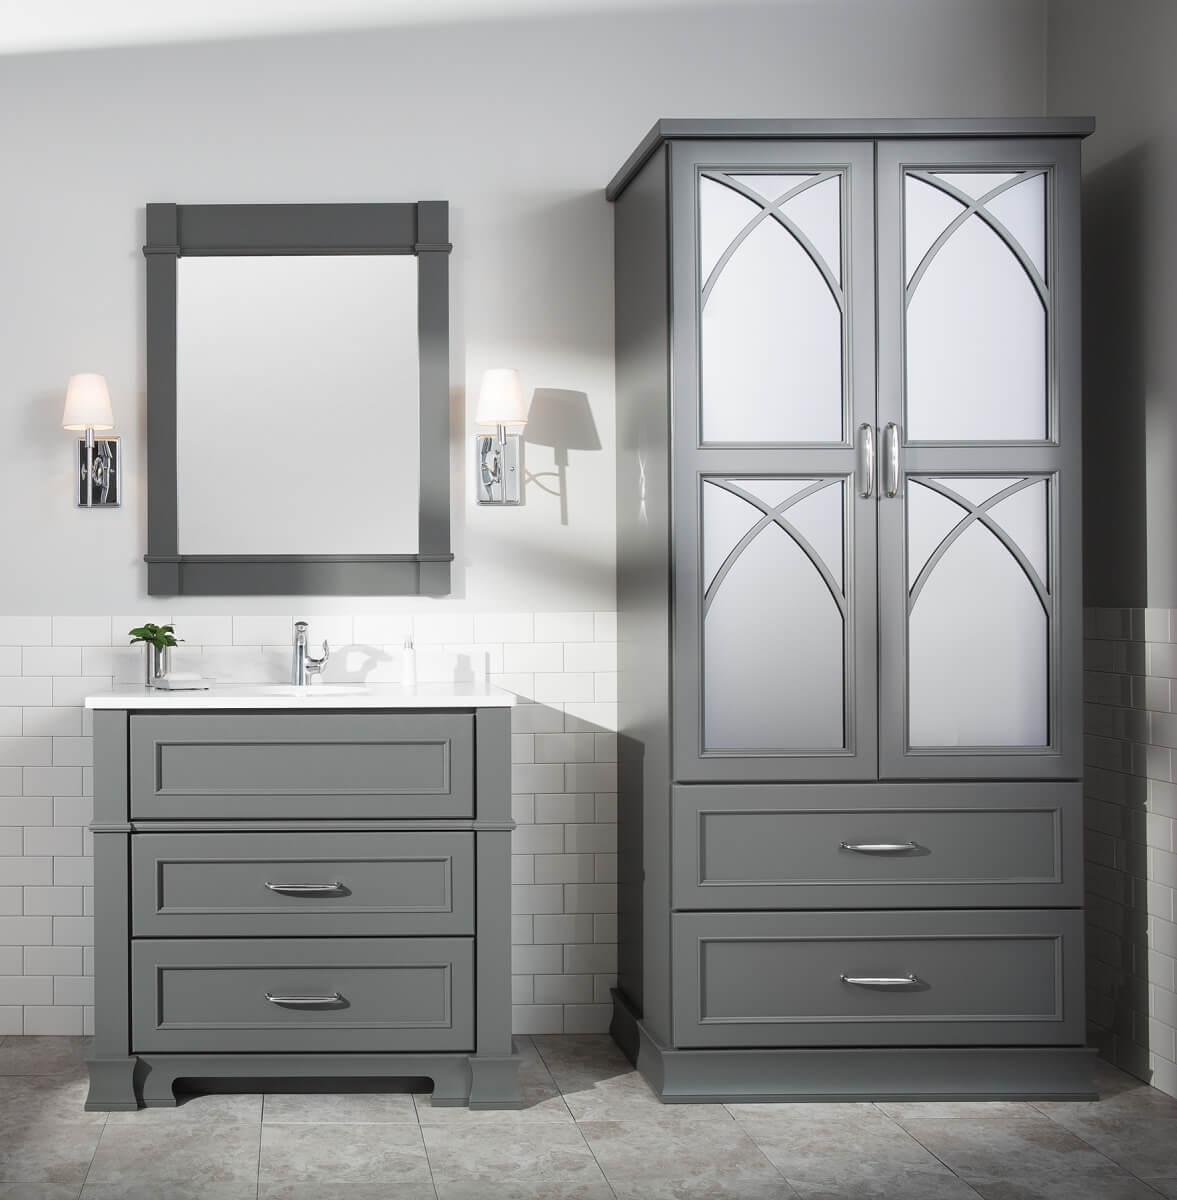 Dark gray bathroom vanity and linen cabinet in a modern bathroom design. Remodeled with a timeless look in mind.